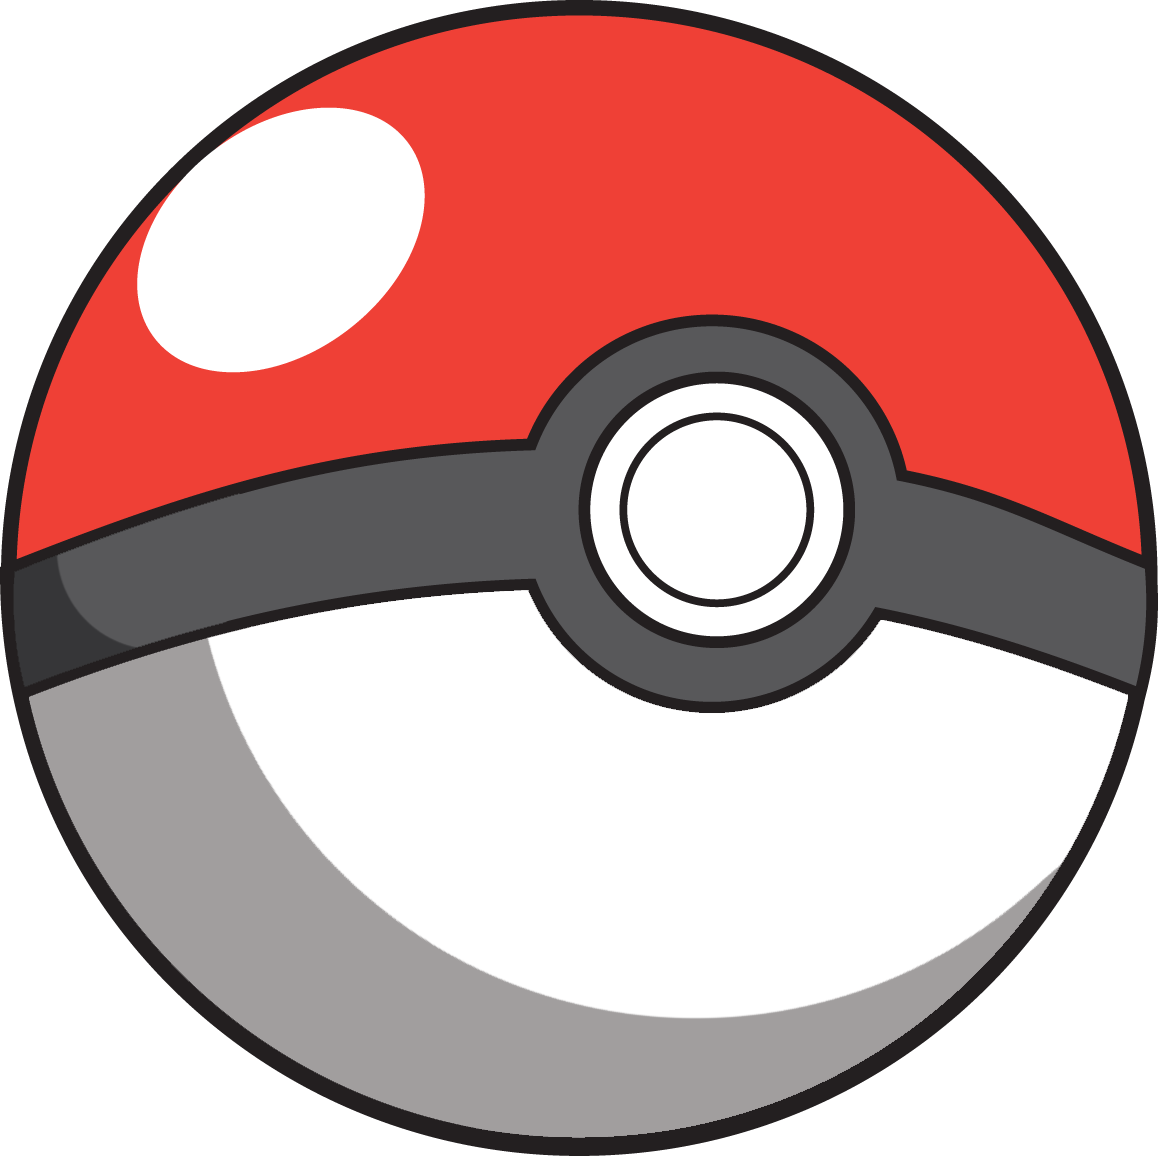 Pokeball clipart. Pokemon ball png images